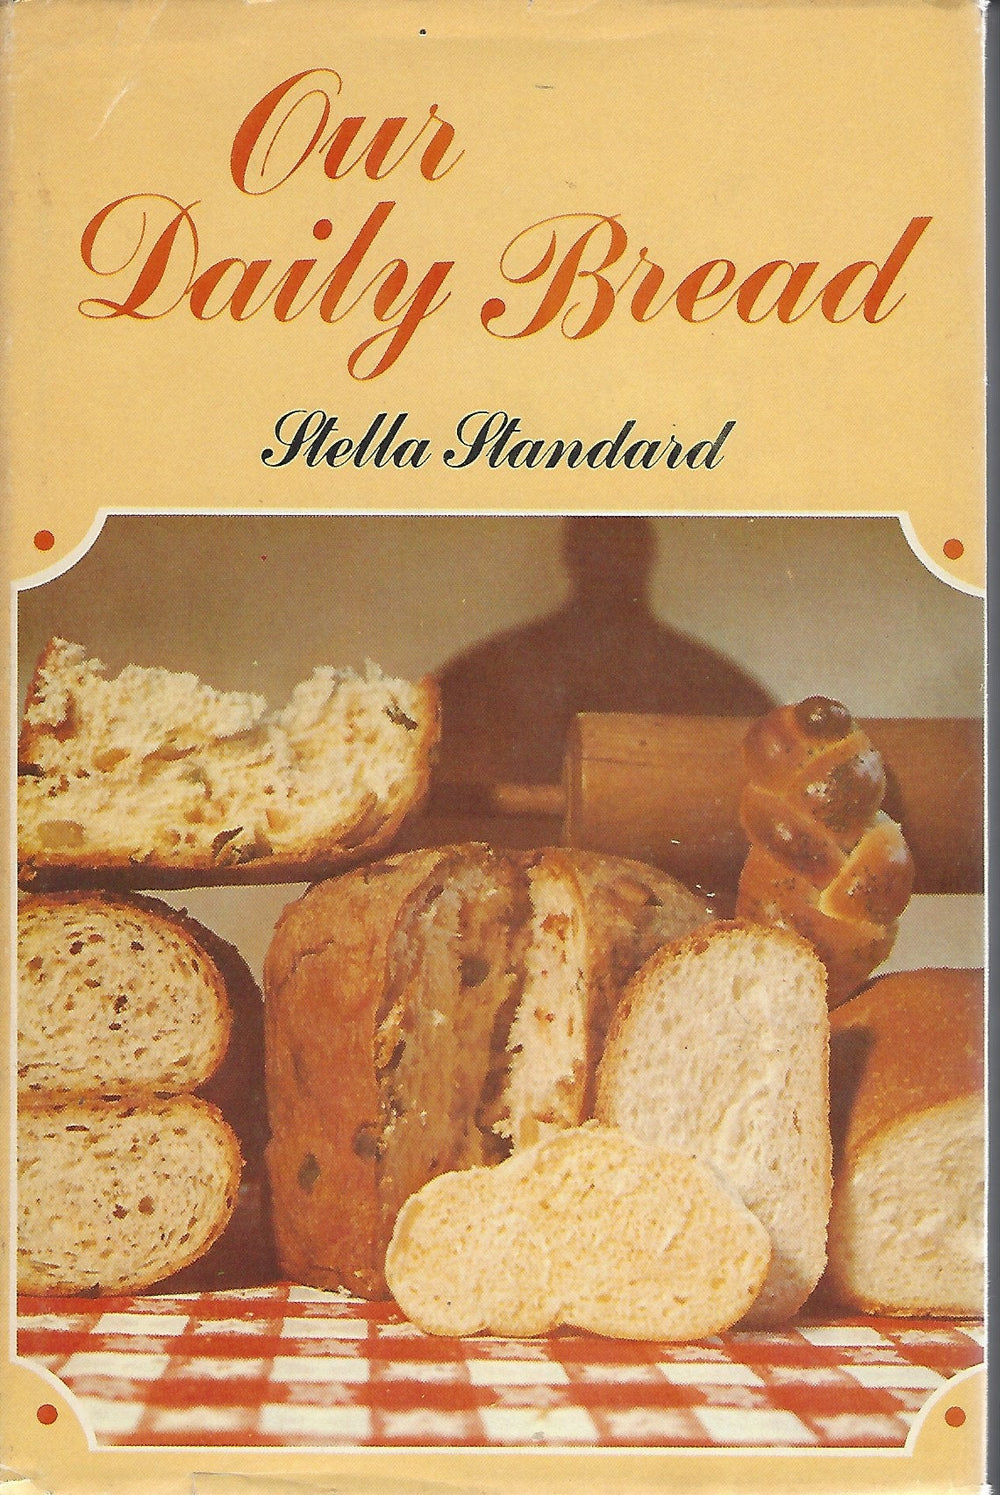 Our Daily  Bread by Stella Standard    (Hardcover)  1970